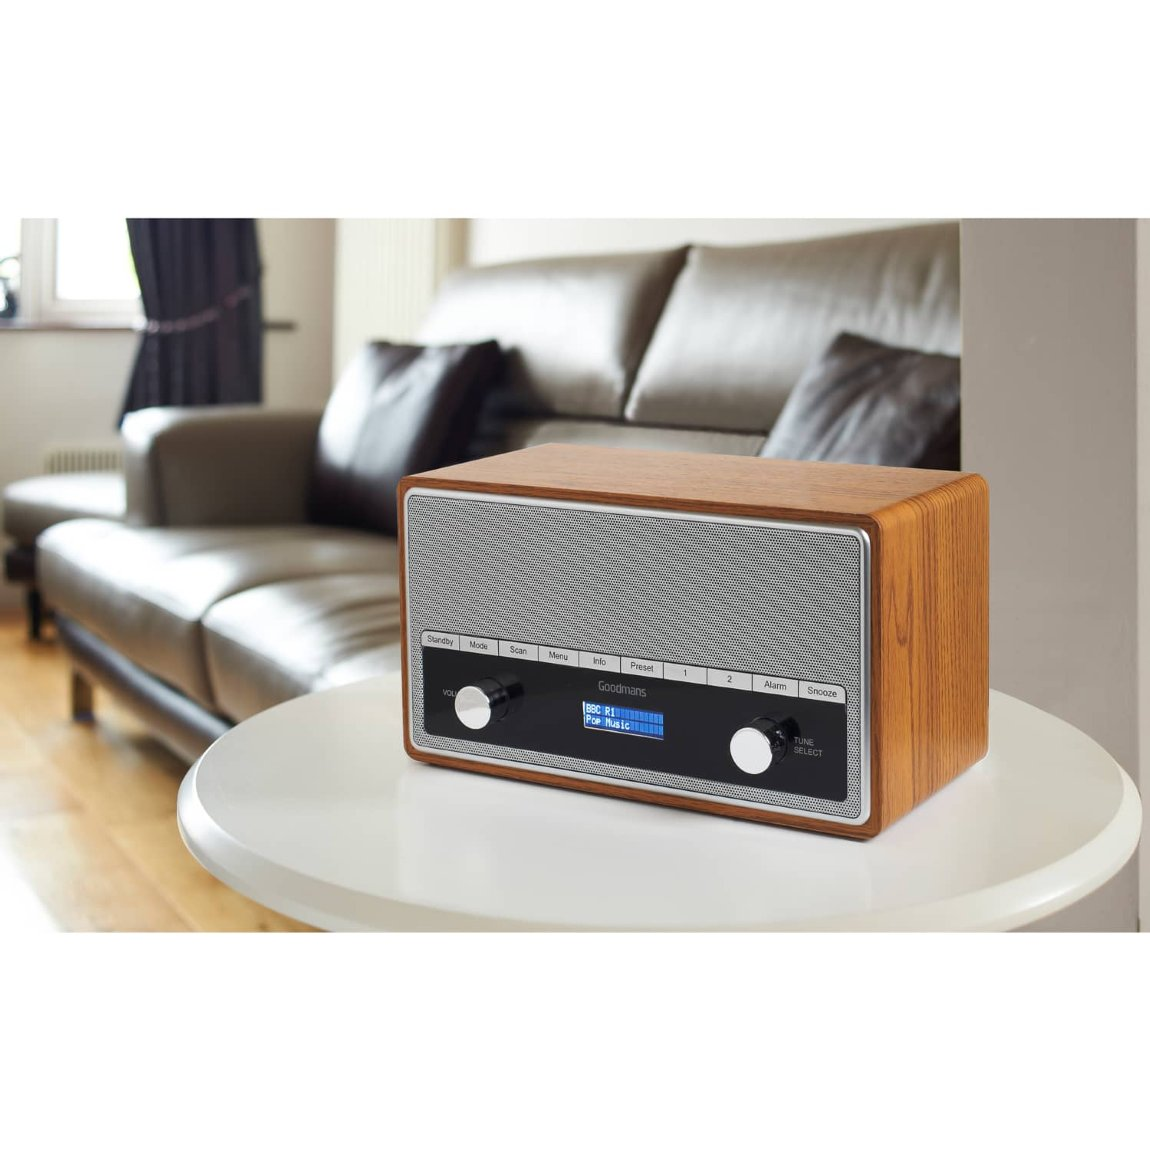 Goodmans Revive Retro DAB Radio